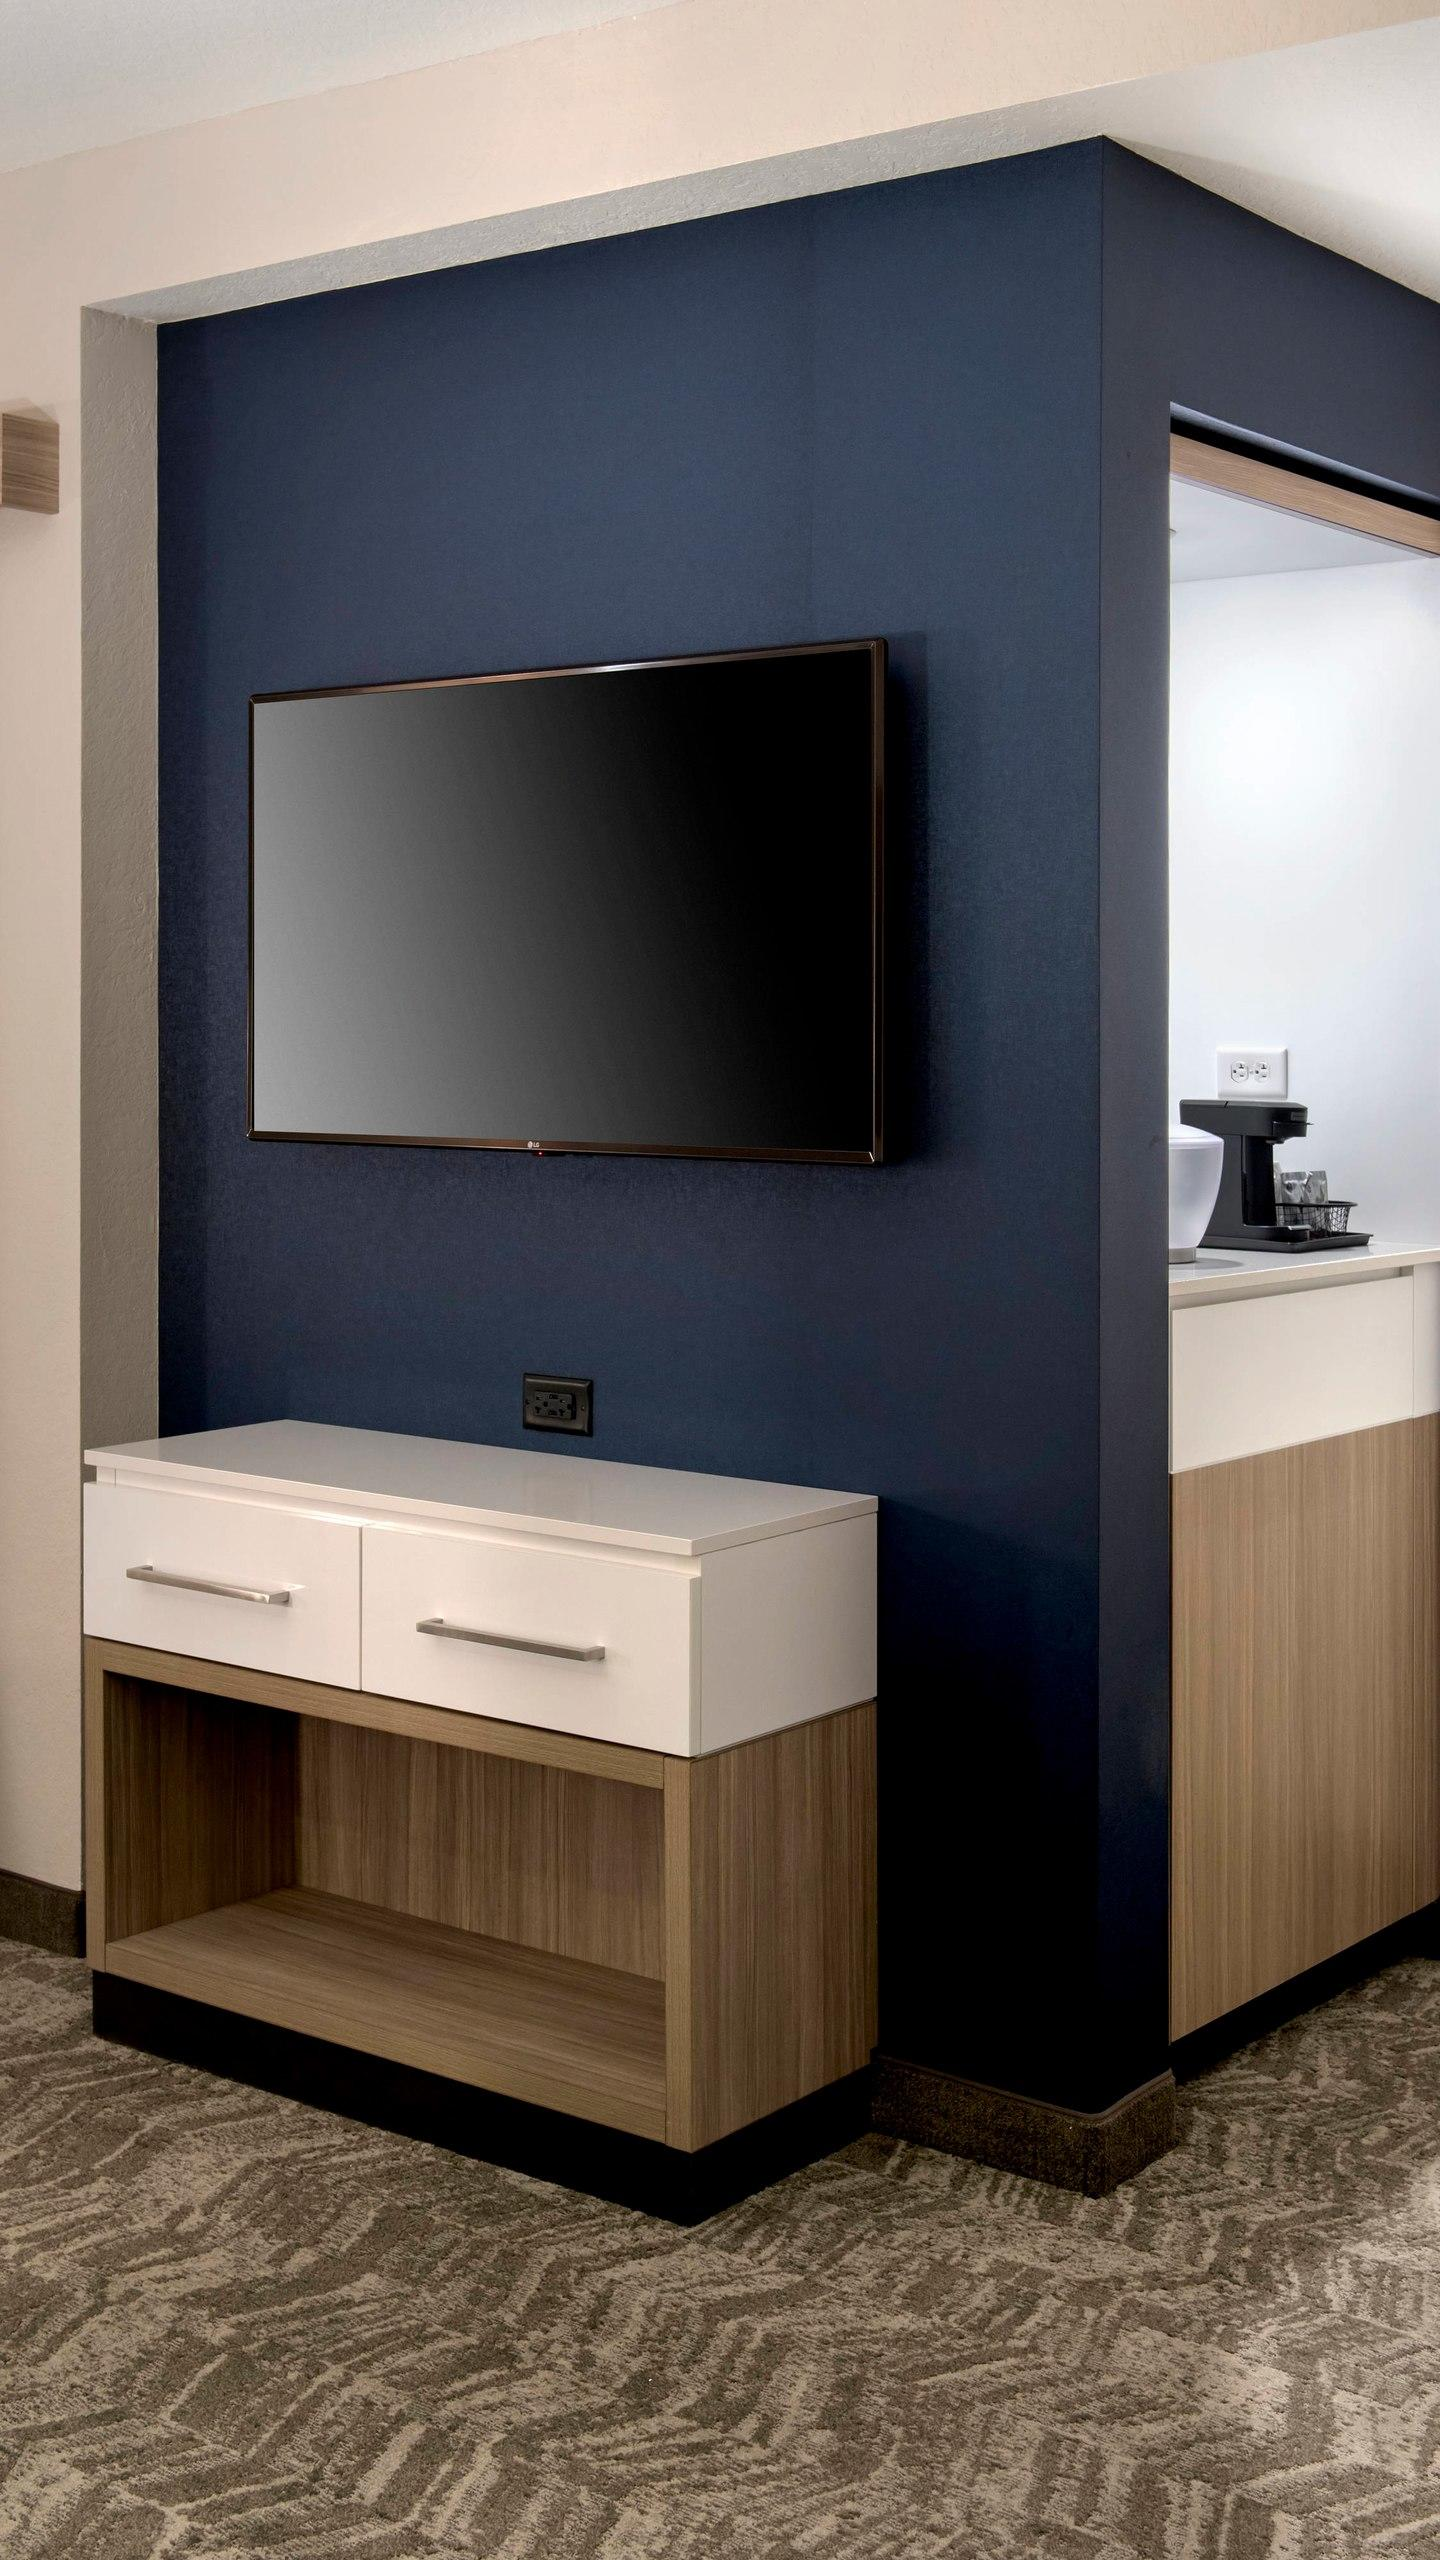 SpringHill Suites by Marriott Tampa Suncoast Parkway image 8